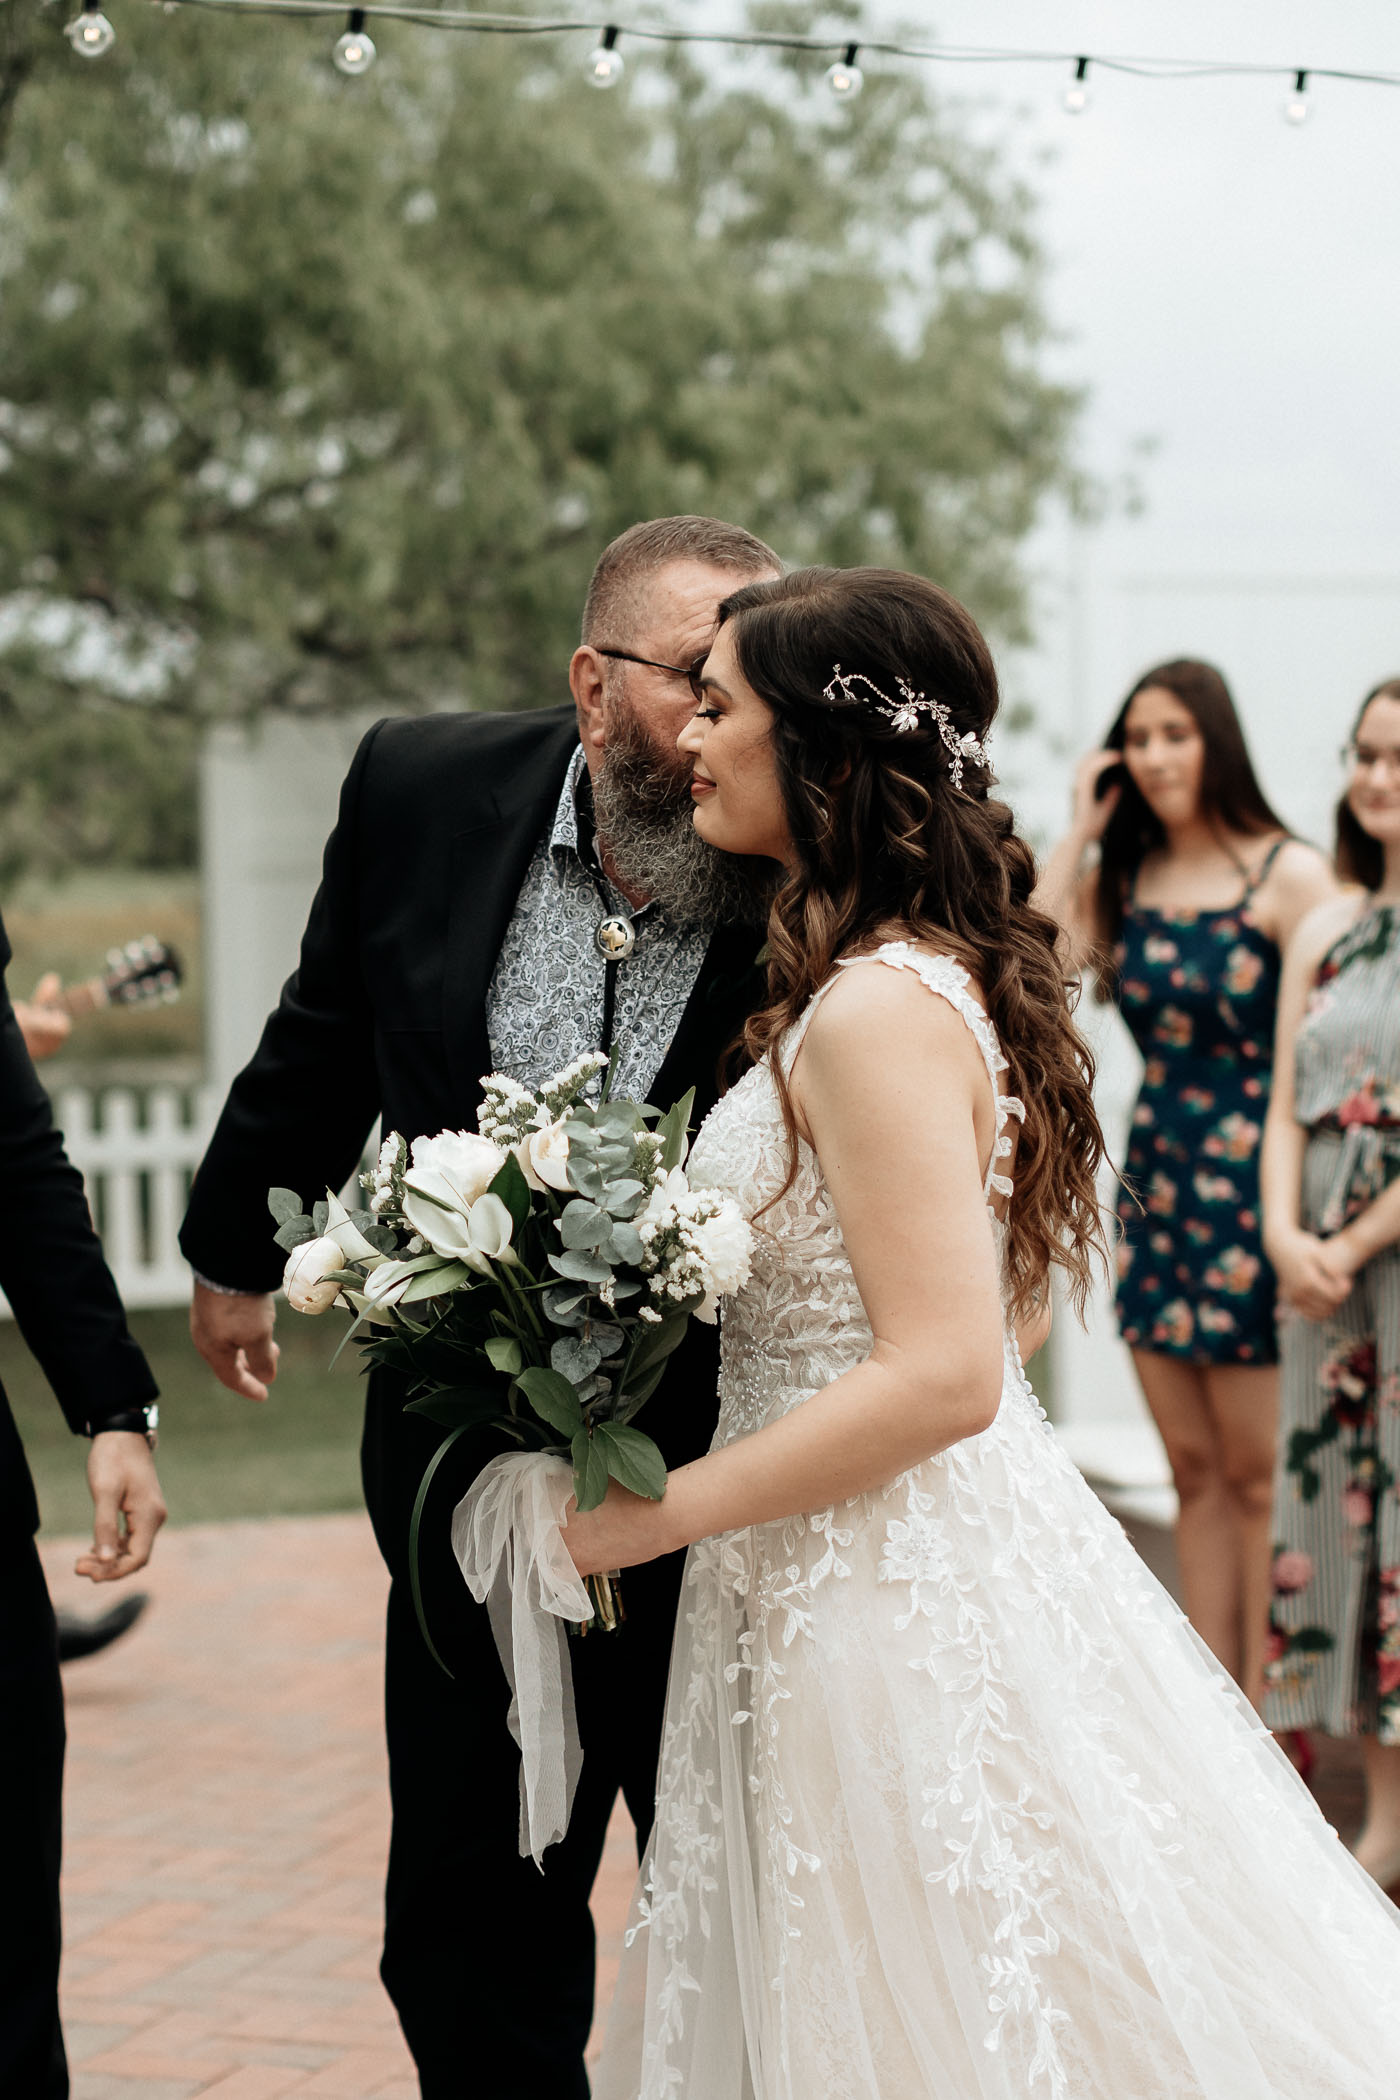 Outdoor wedding ceremony in DFW